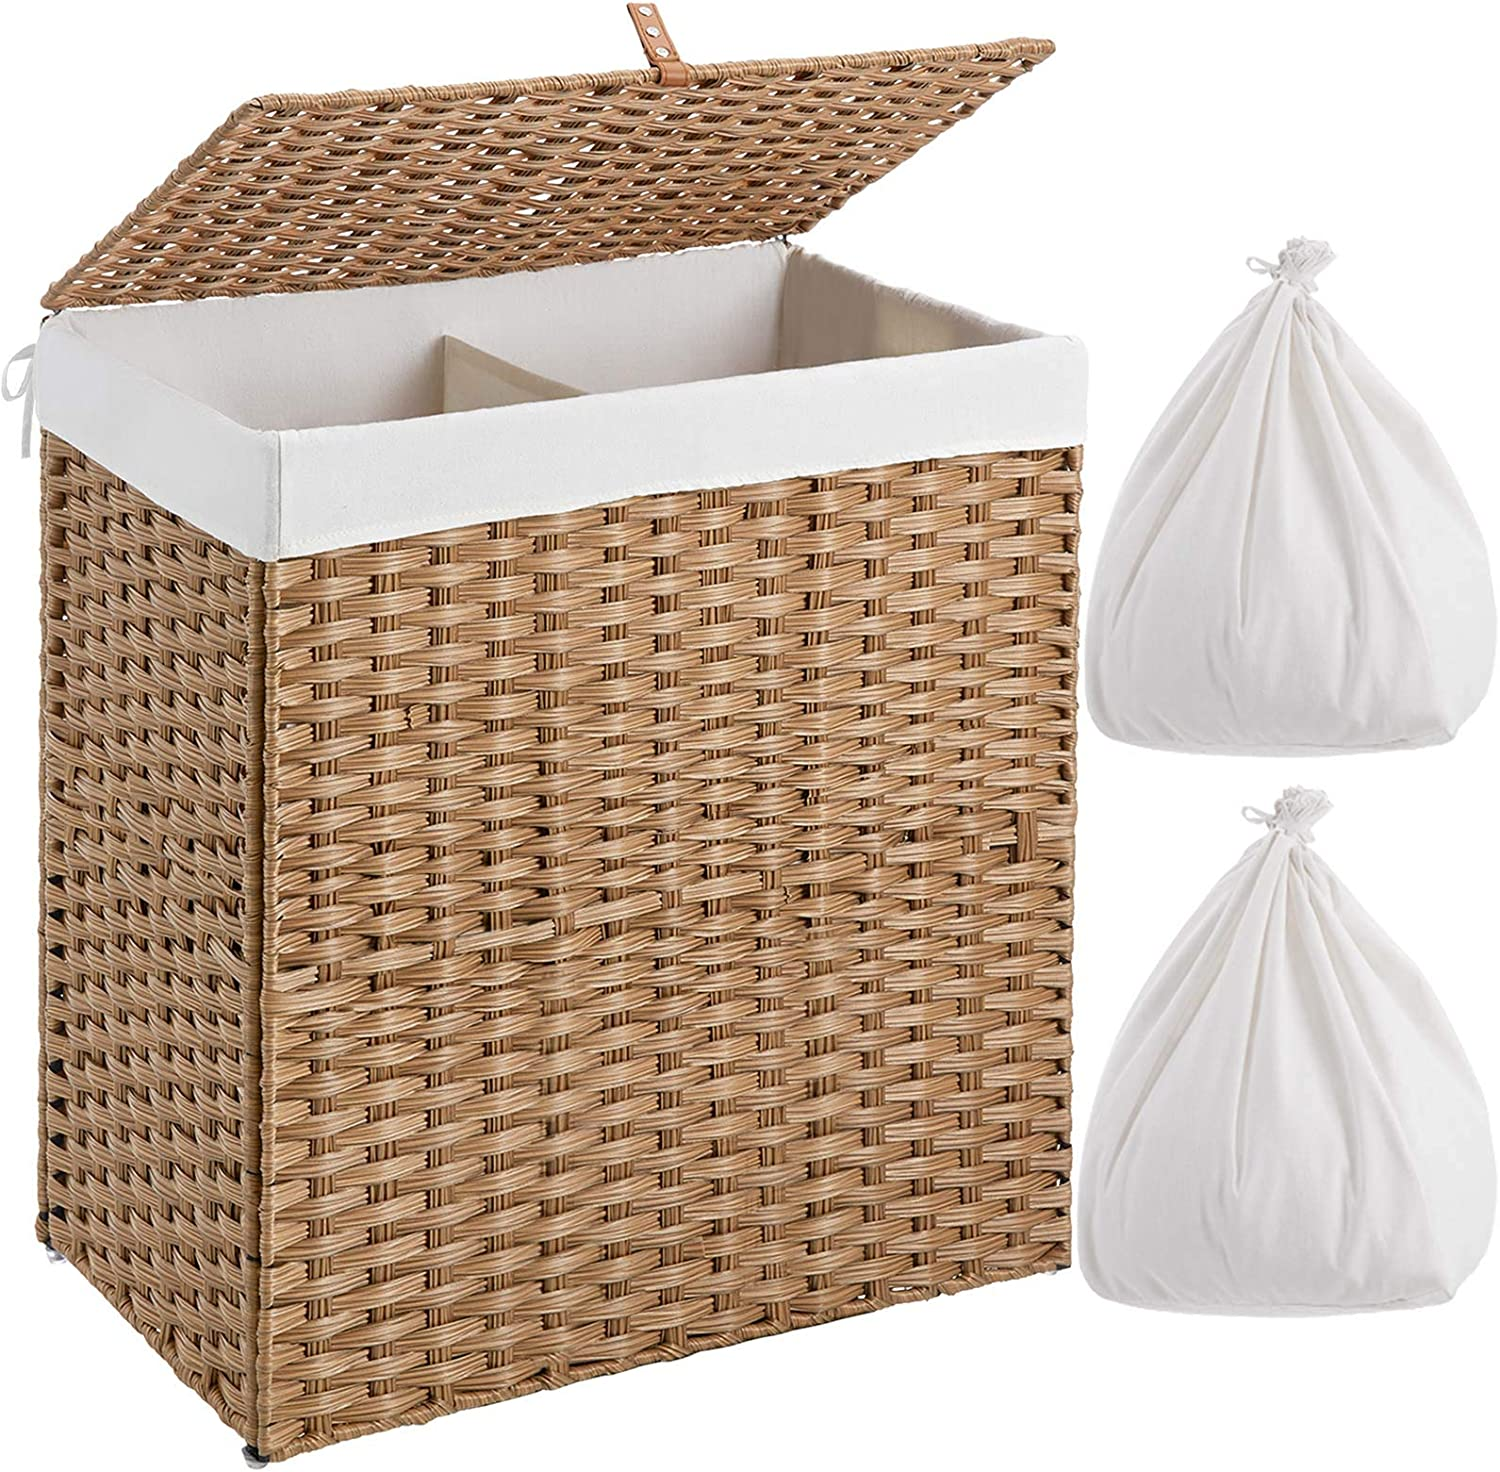 Greenstell Laundry Hamper with 2 Removable Liner Bags, Divided Clothes Hamper, 110L Handwoven Synthetic Rattan Laundry Basket with Lid and Handles, Foldable & Easy to Install Natural (22x12x24 Inches)